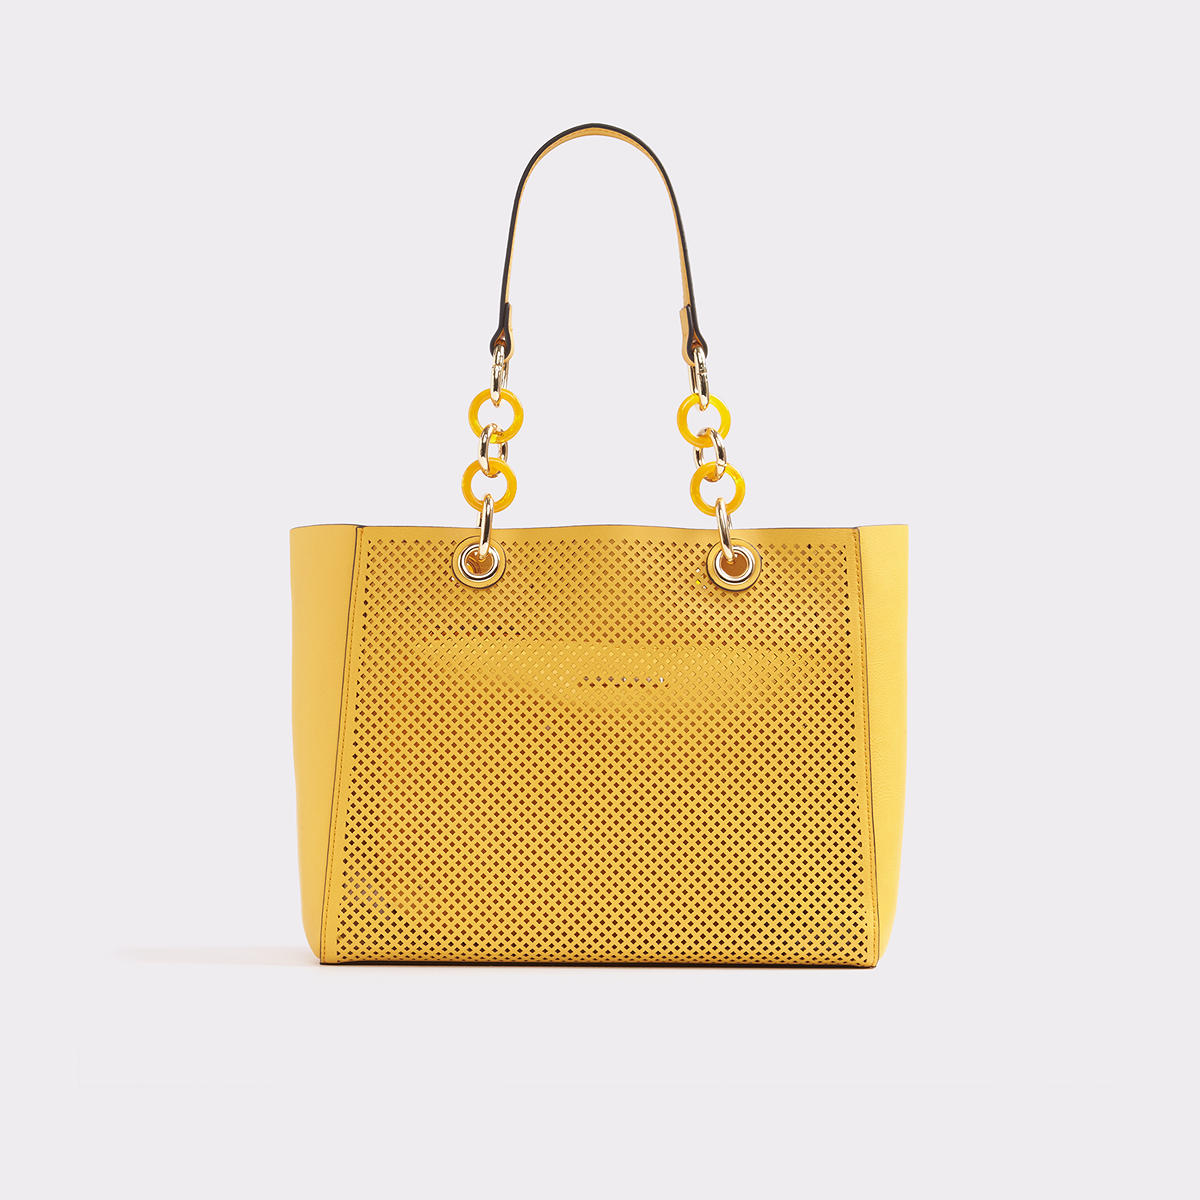 6a1fdbcd71f Werlinger Light Yellow Women s Handbags